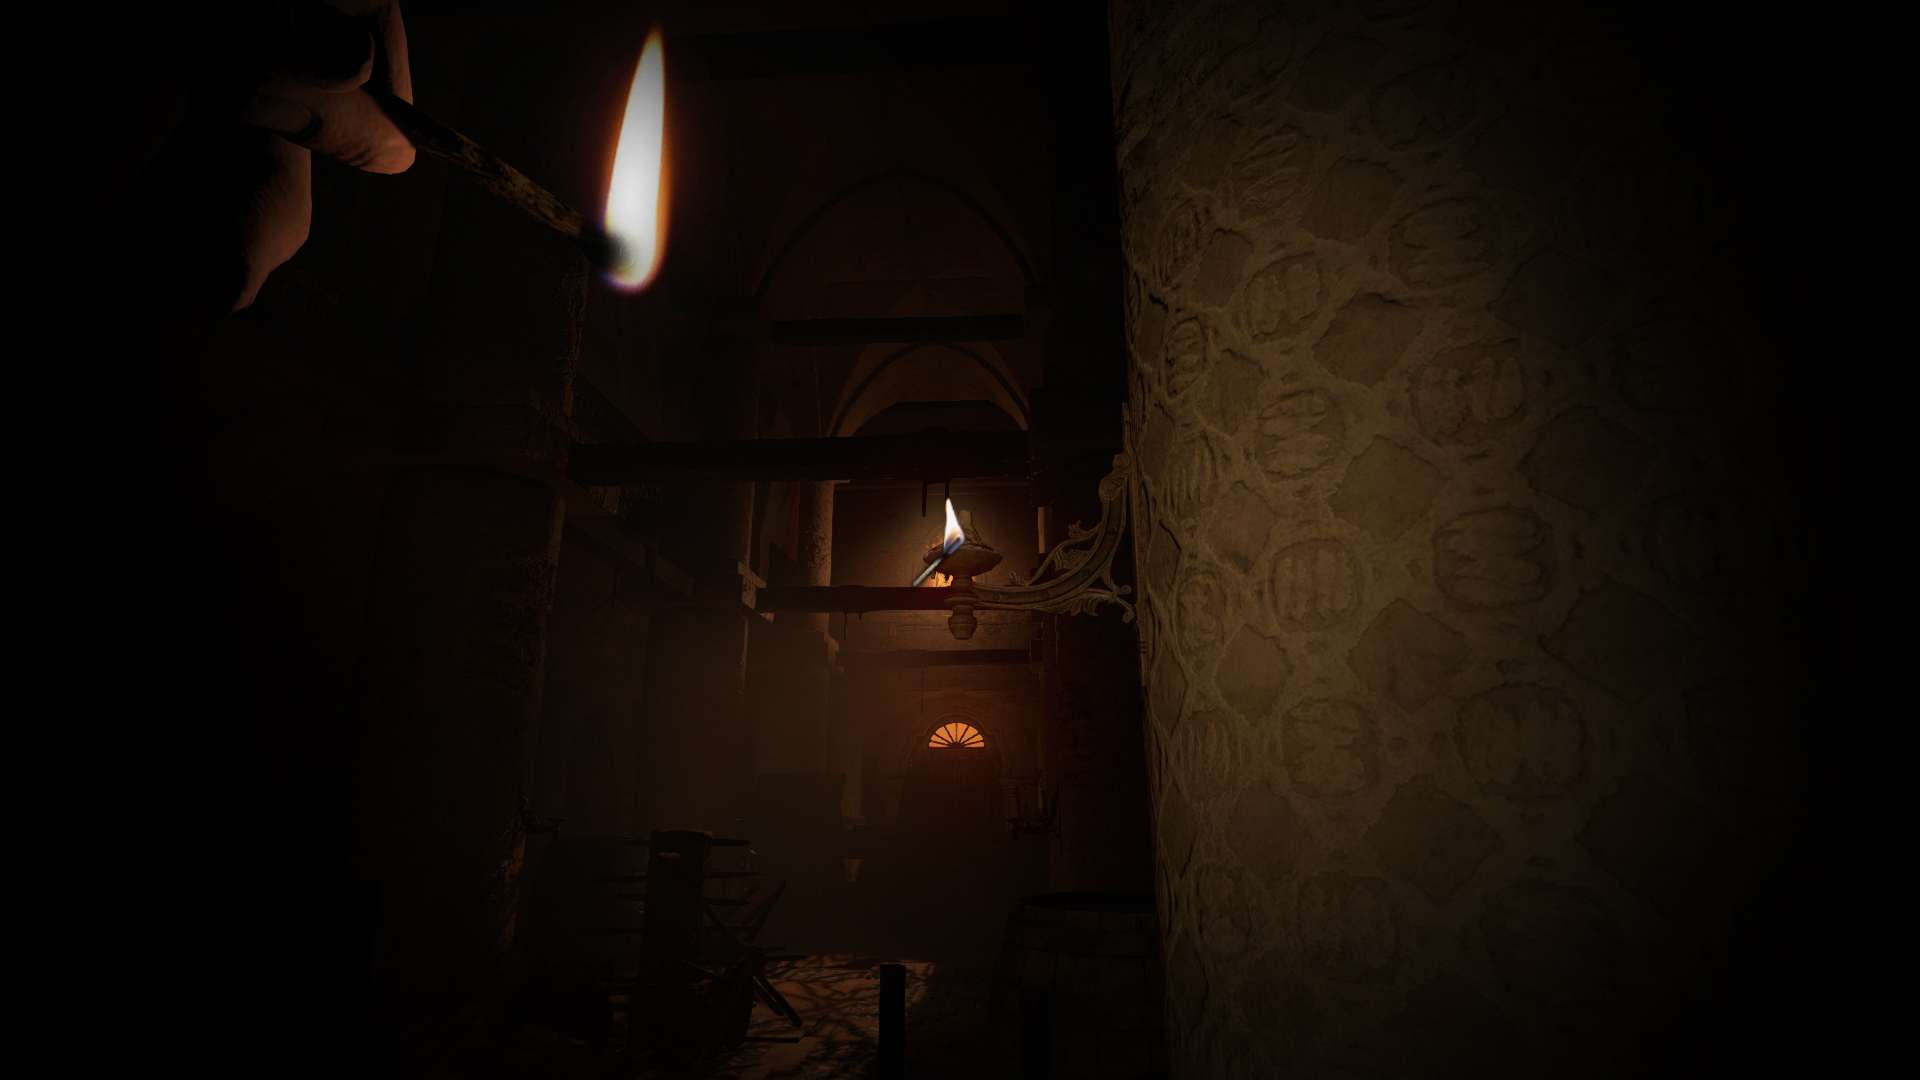 Frictional Games shed more light on the new fear system in Amnesia: Rebirth